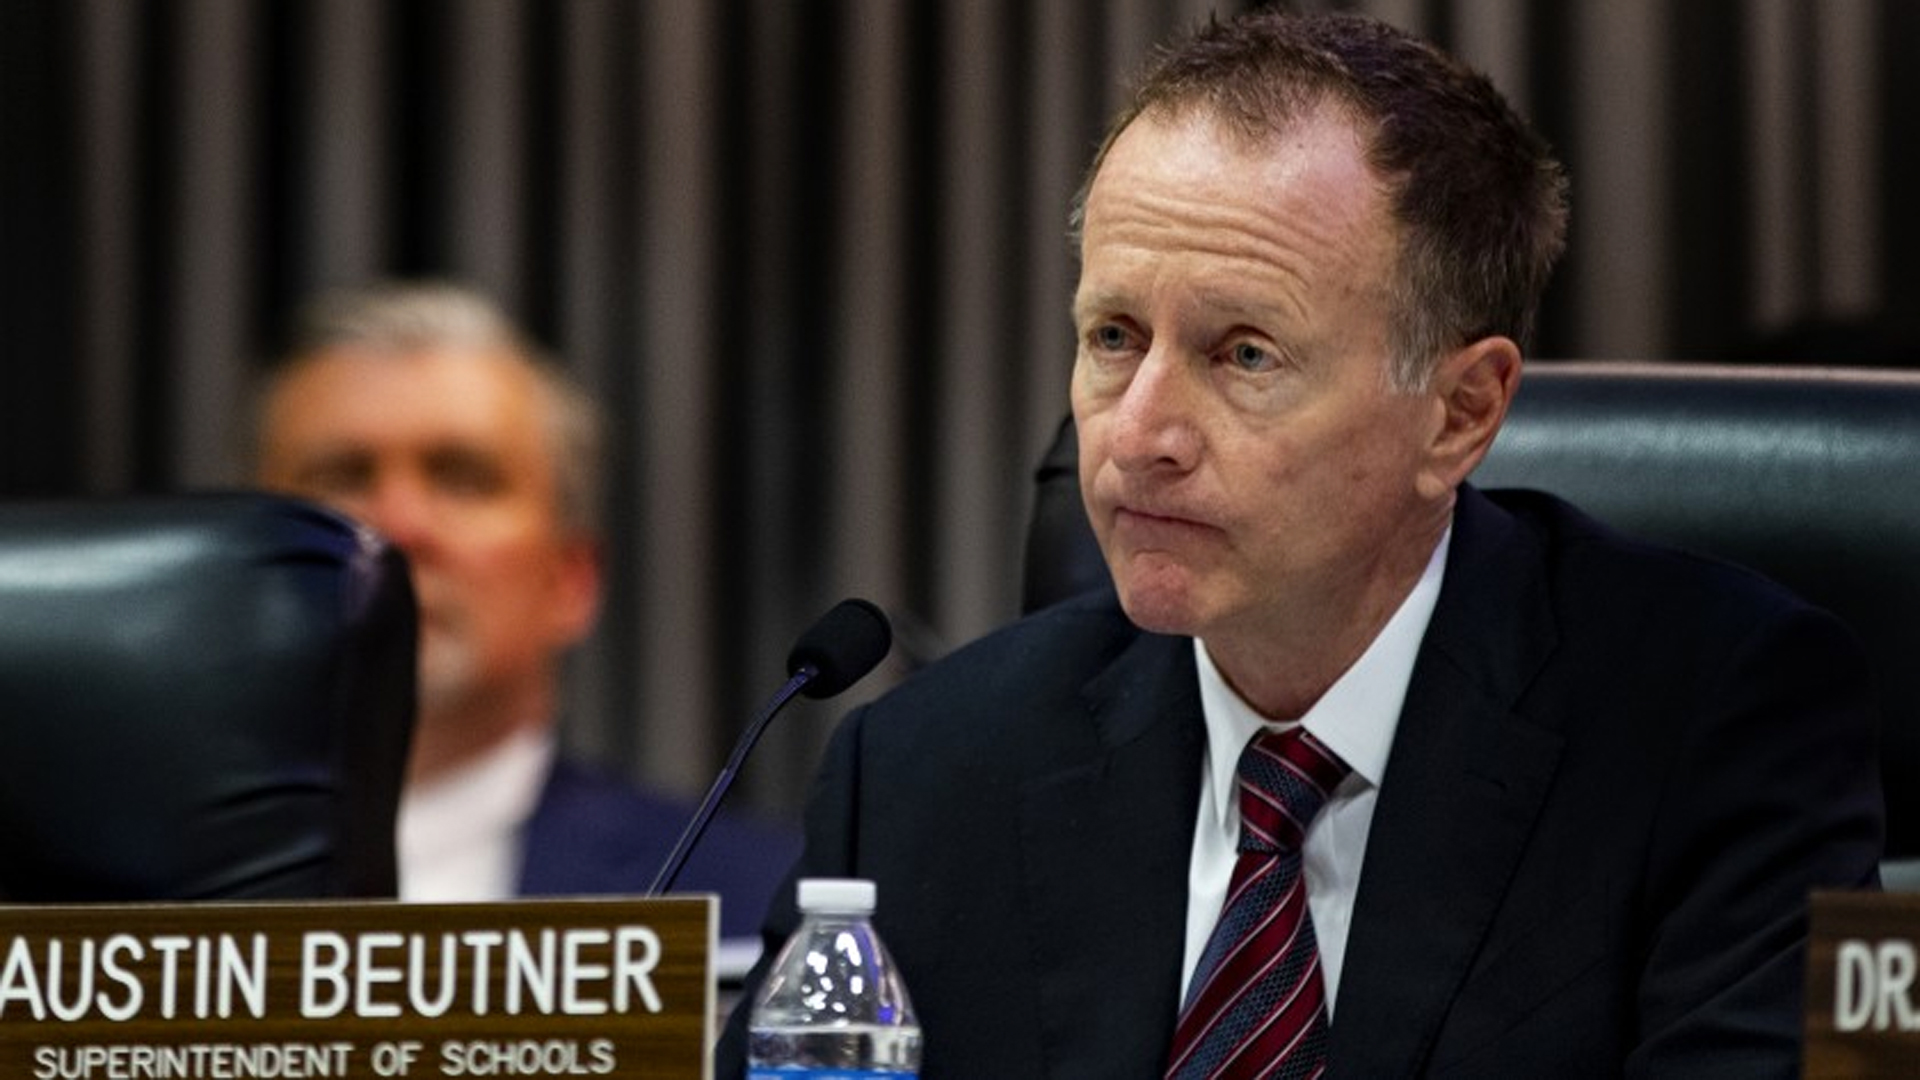 L.A. schools Supt. Austin Beutner provides a coronavirus update on Tuesday, just before the Board of Education votes to give him emergency powers to respond to the outbreak.(Gina Ferazzi/Gina Ferazzi/Los Angeles Times)